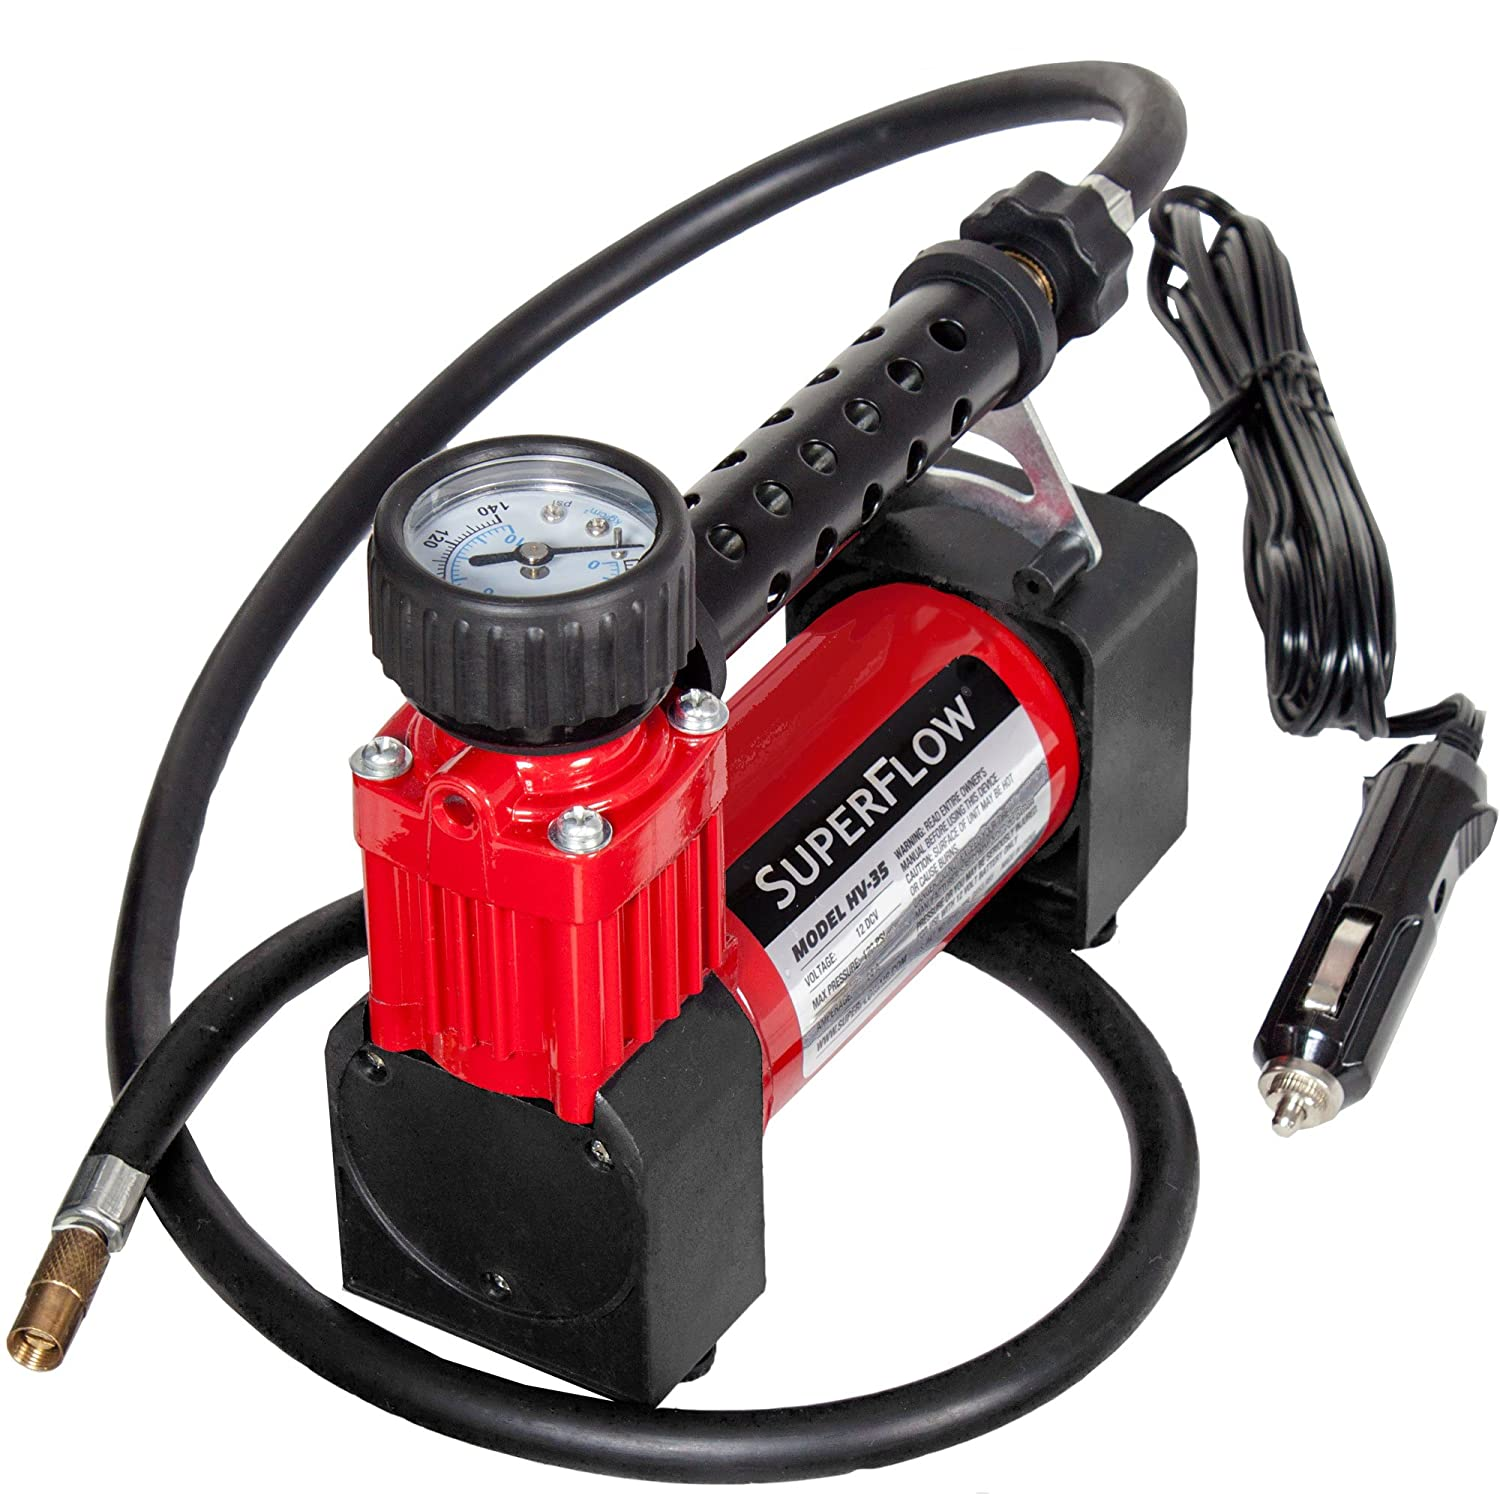 Q Industries HV35 SuperFlow 12-Volt 140 PSI Air Compressor KEYU1 HV-35